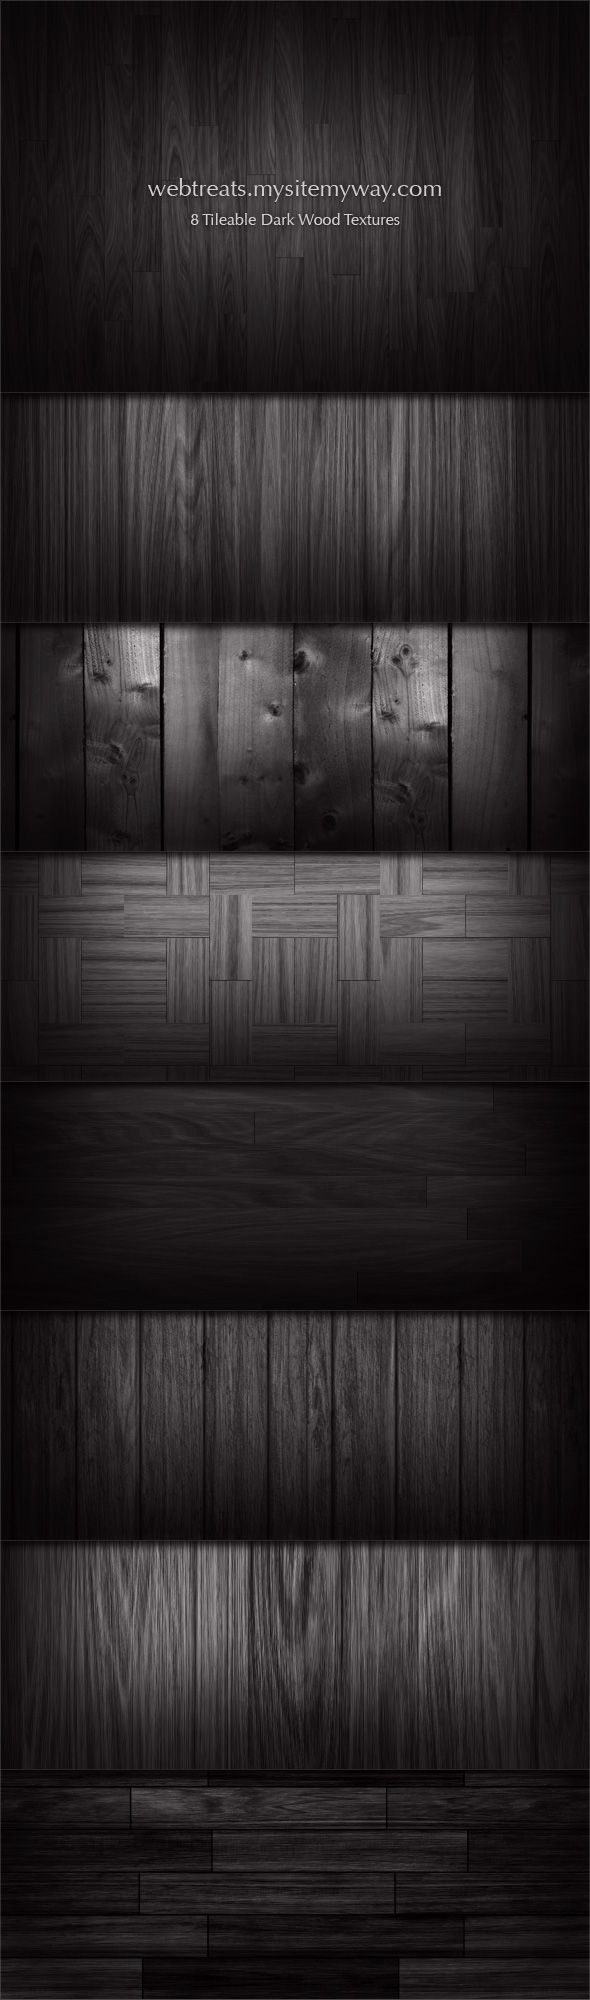 8 Tileable Dark Wood Textures by WebTreatsETC.deviantart.com on @deviantART